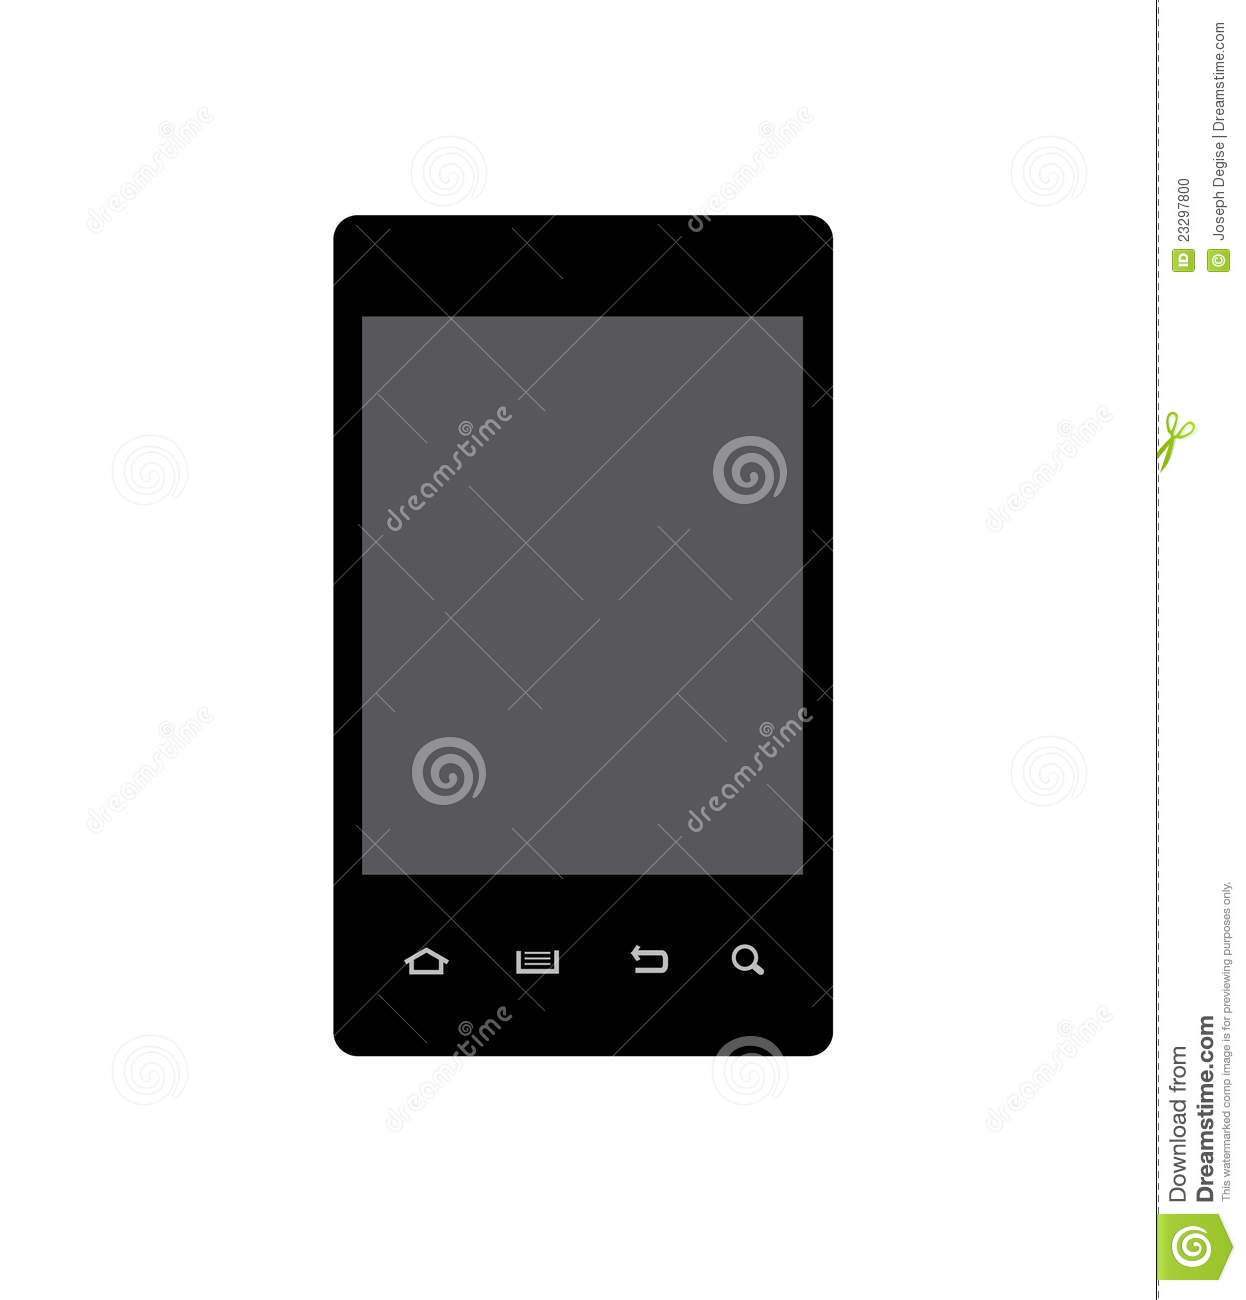 Android Smart Phone Vector Stock Photo - Image: 23297800